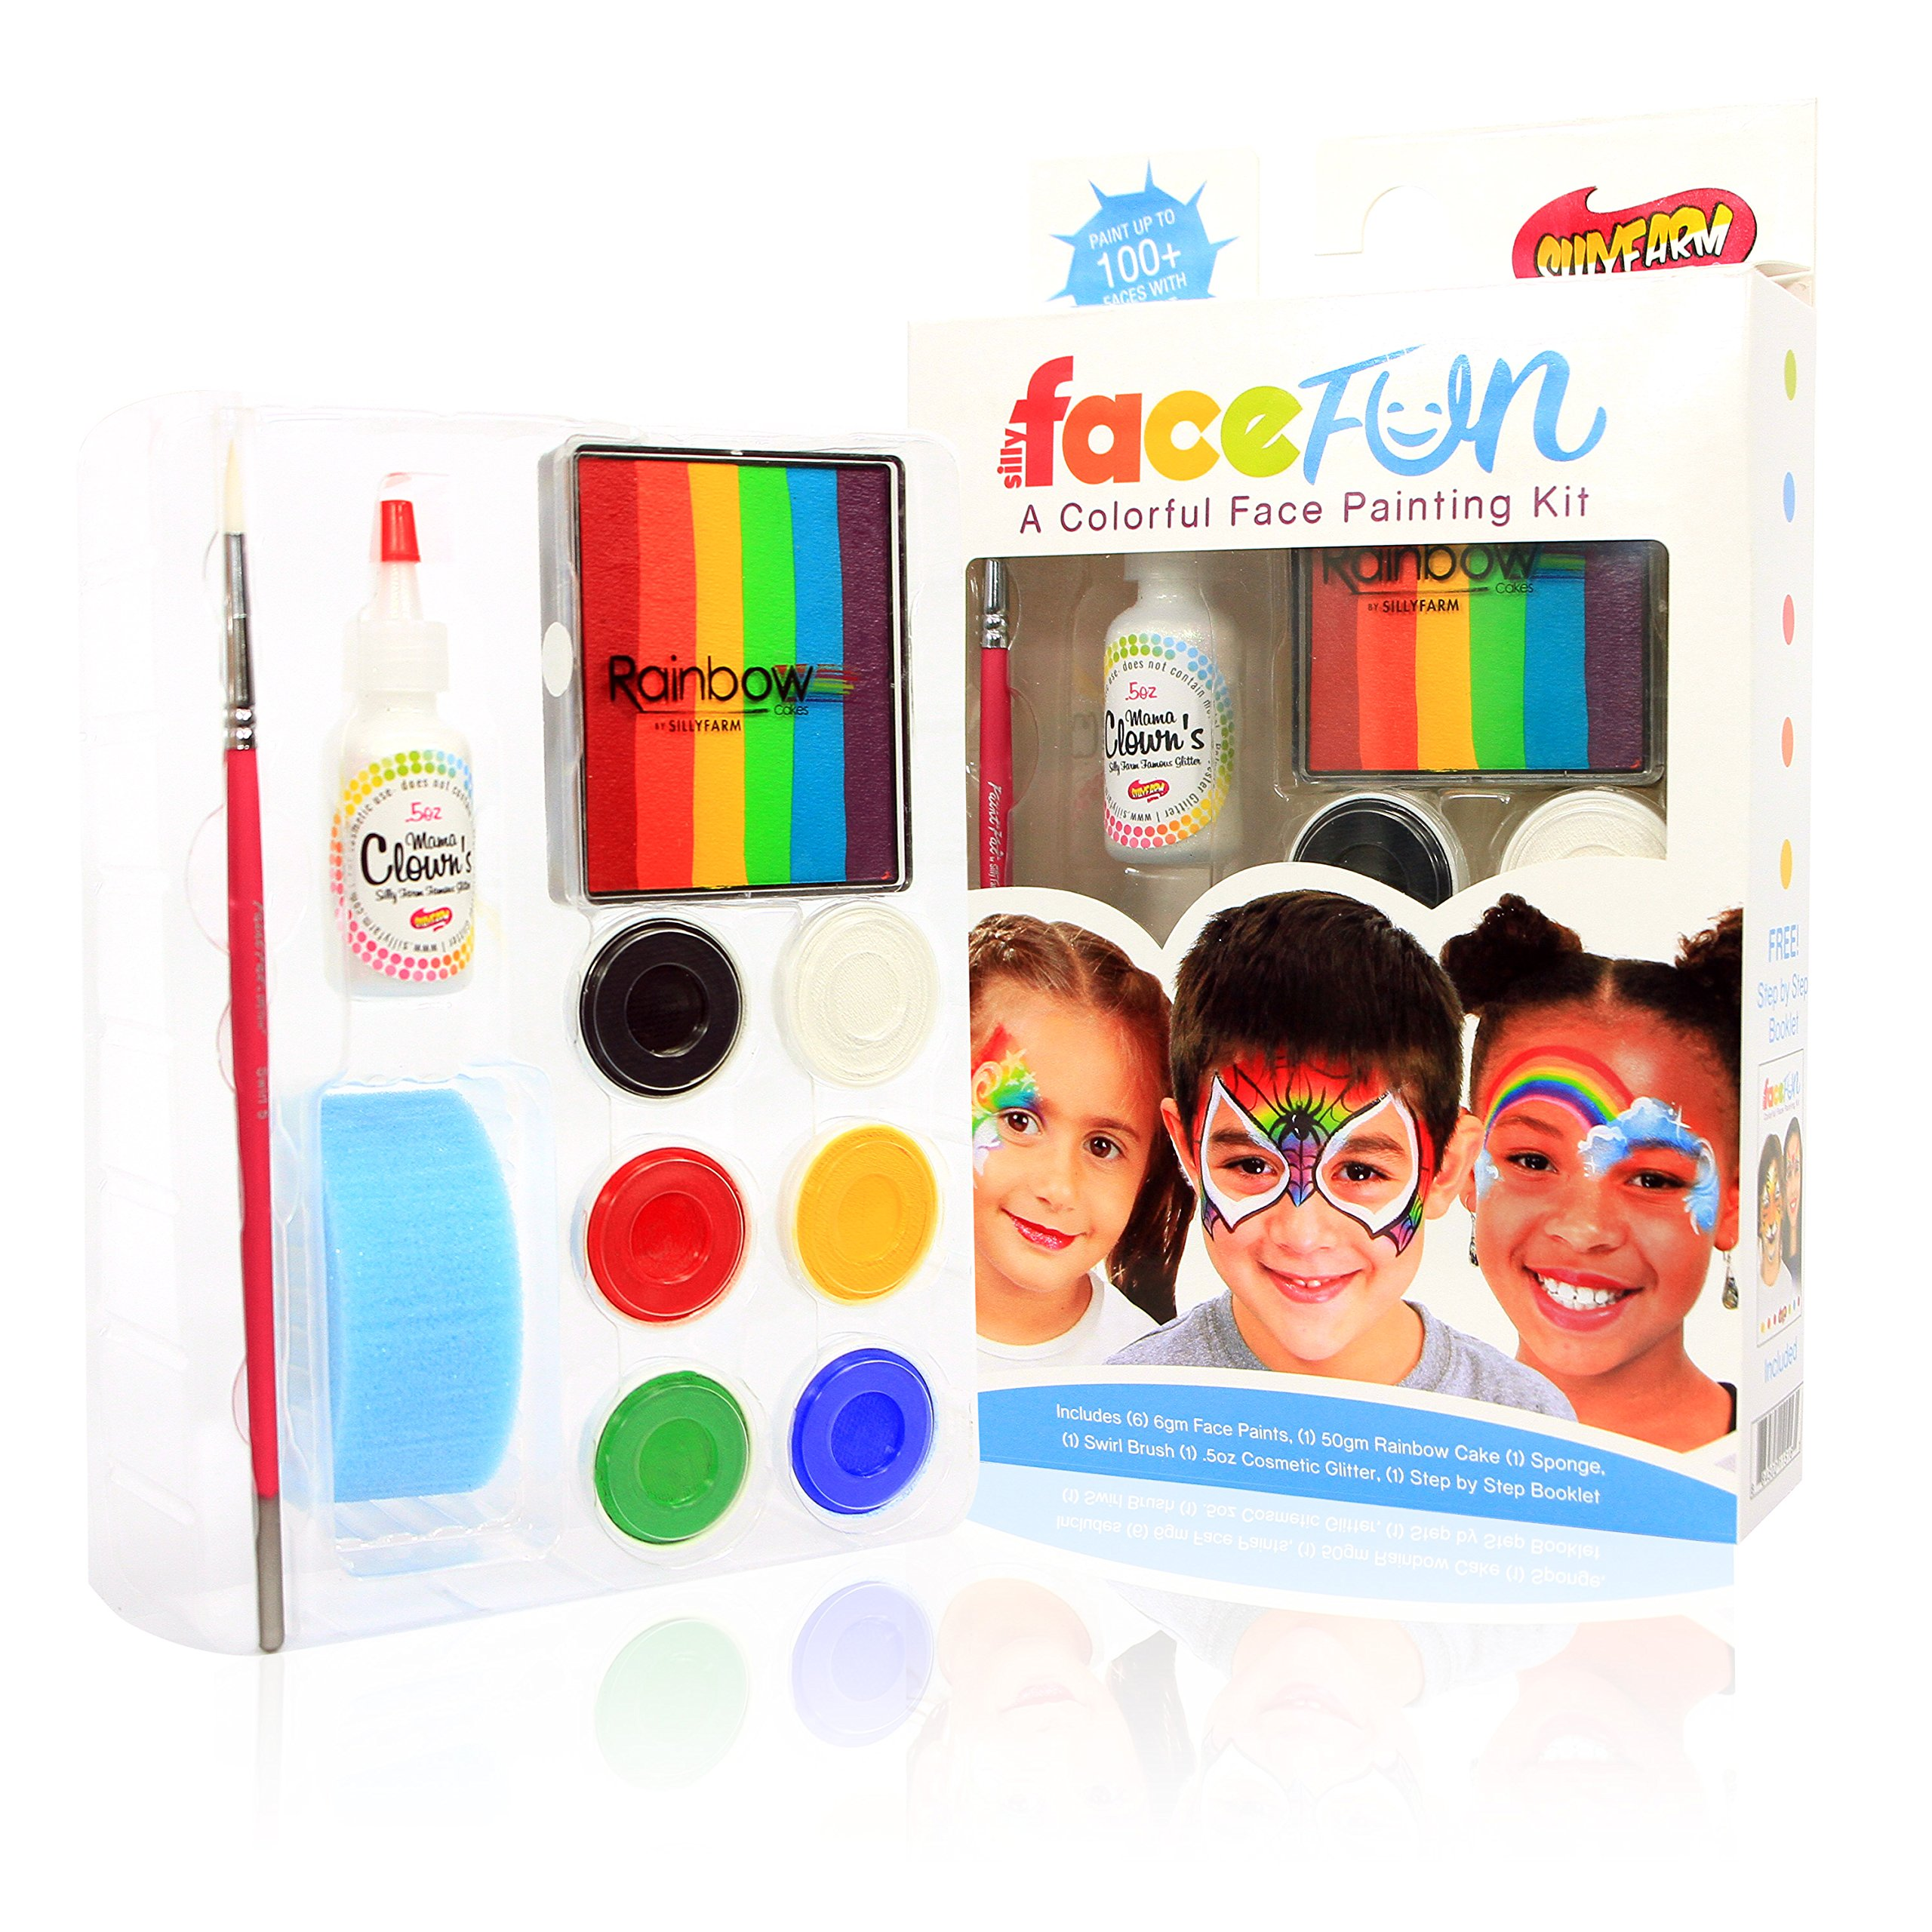 Silly Farm Rainbow Party Face Painting FACEfun Kit by Sillyfarm